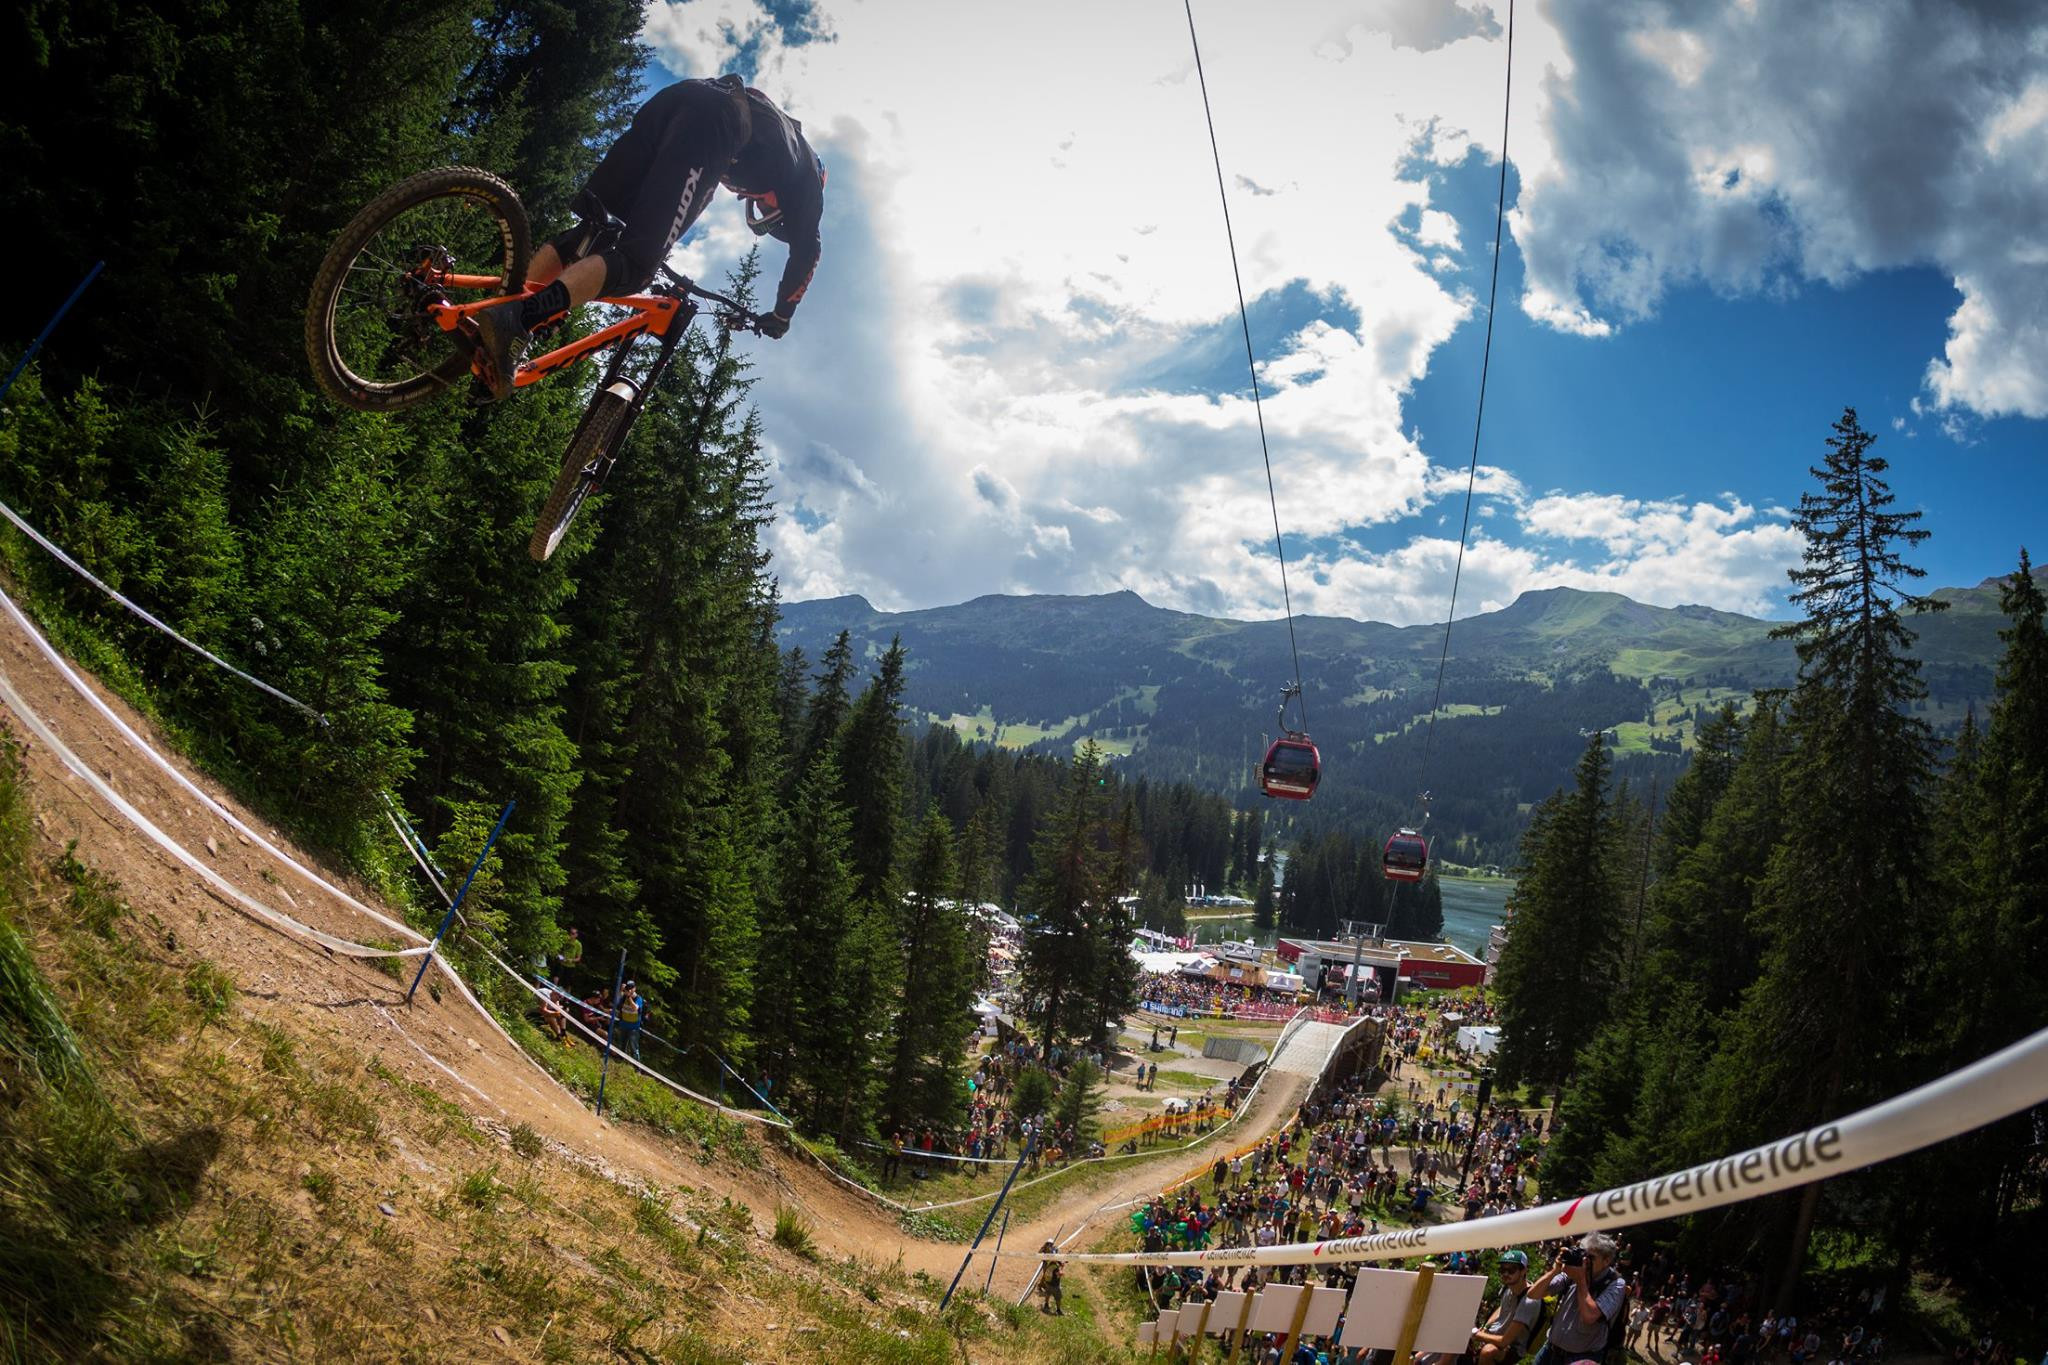 British riders Rachel Atherton and Tahnée Seagrave are favourites in the women's elite downhill event that will take place on the last day of the UCI Mountain Bike World Championships starting at Lenzerheide, pictured, in Switzerland ©UCI